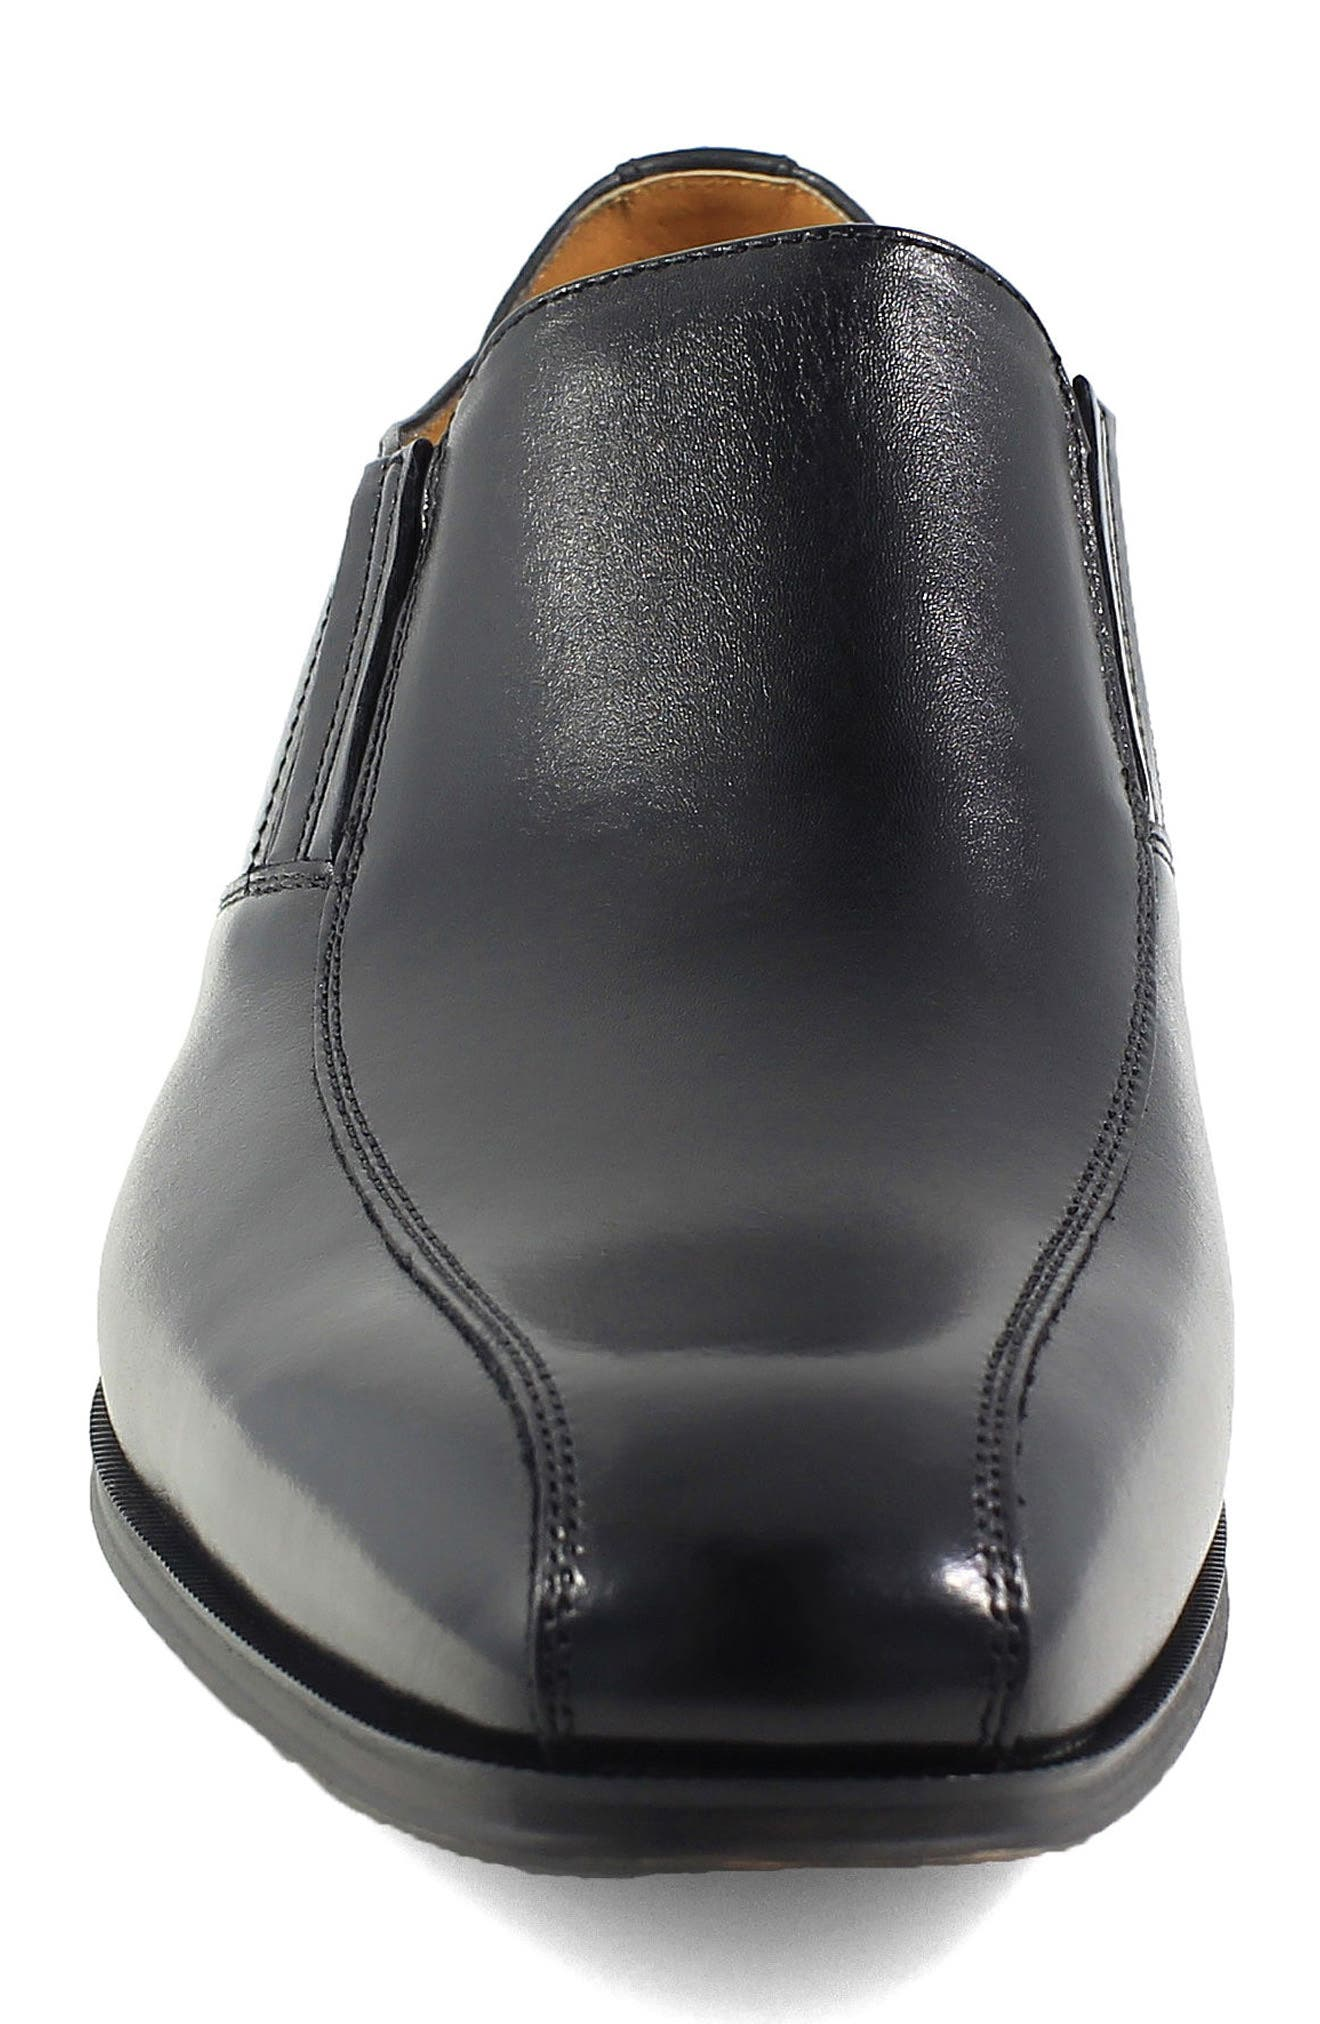 Corbetta Venetian Loafer,                             Alternate thumbnail 4, color,                             BLACK